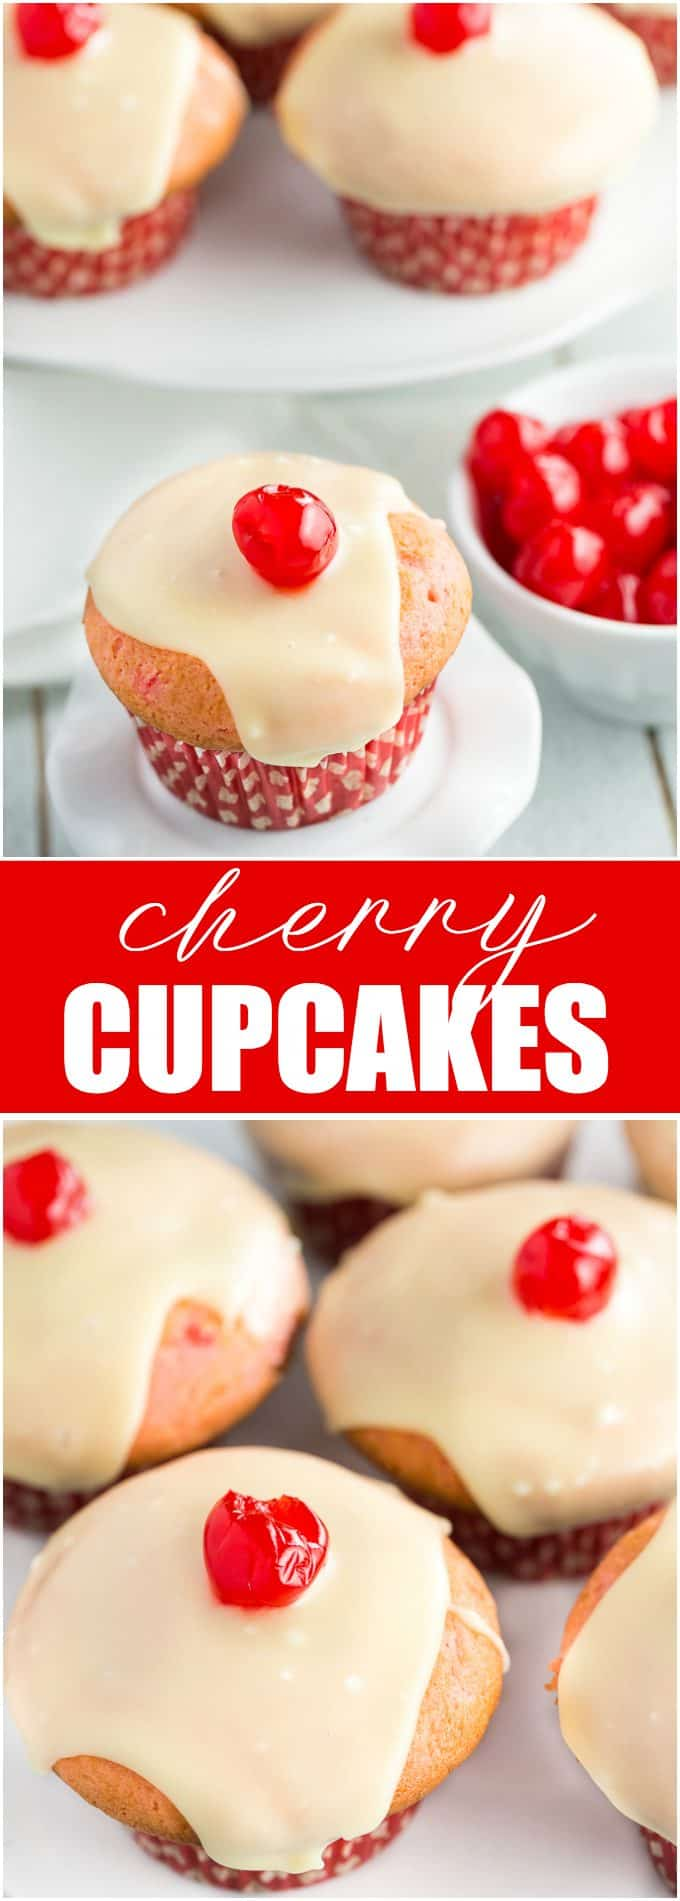 Cherry Cupcakes - White cake mix is doctored with cherries and topped with a rich, smooth white chocolate glaze.